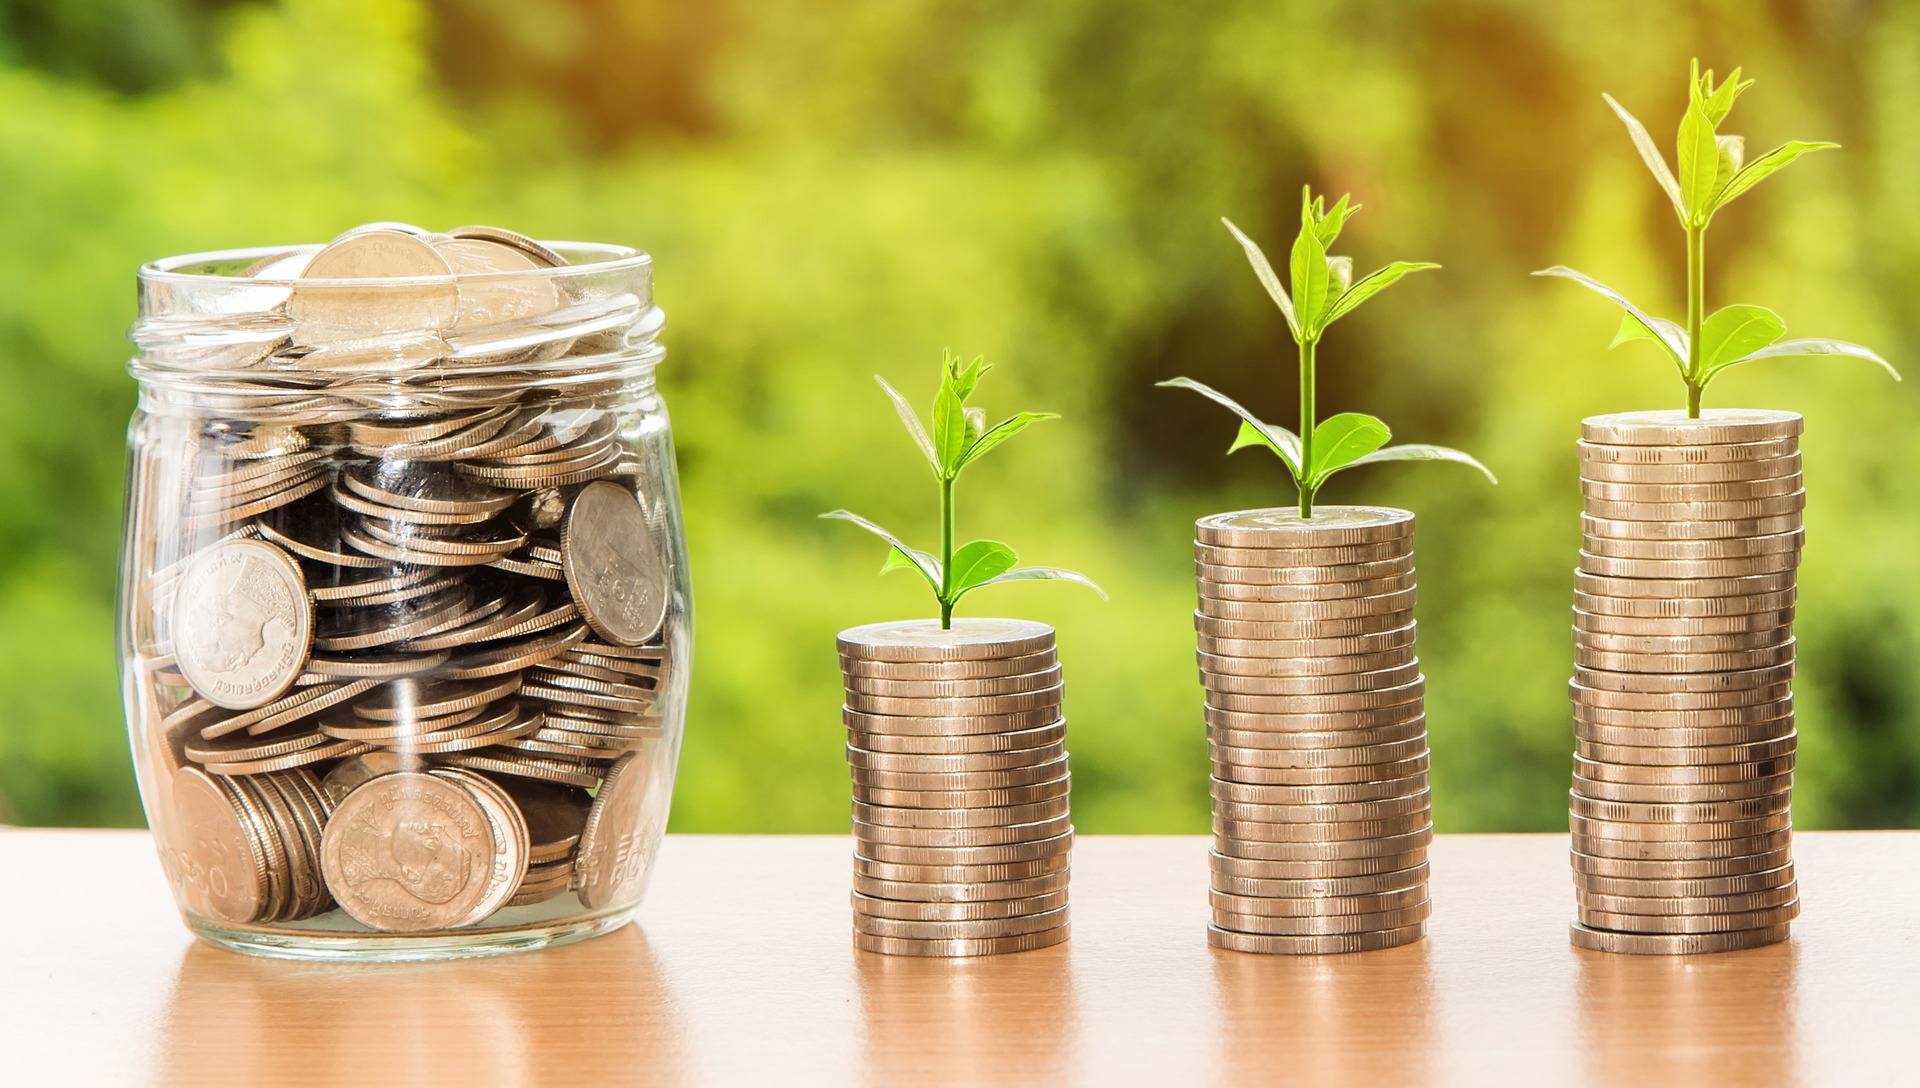 15 sinking fund categories that will make your budget smarter